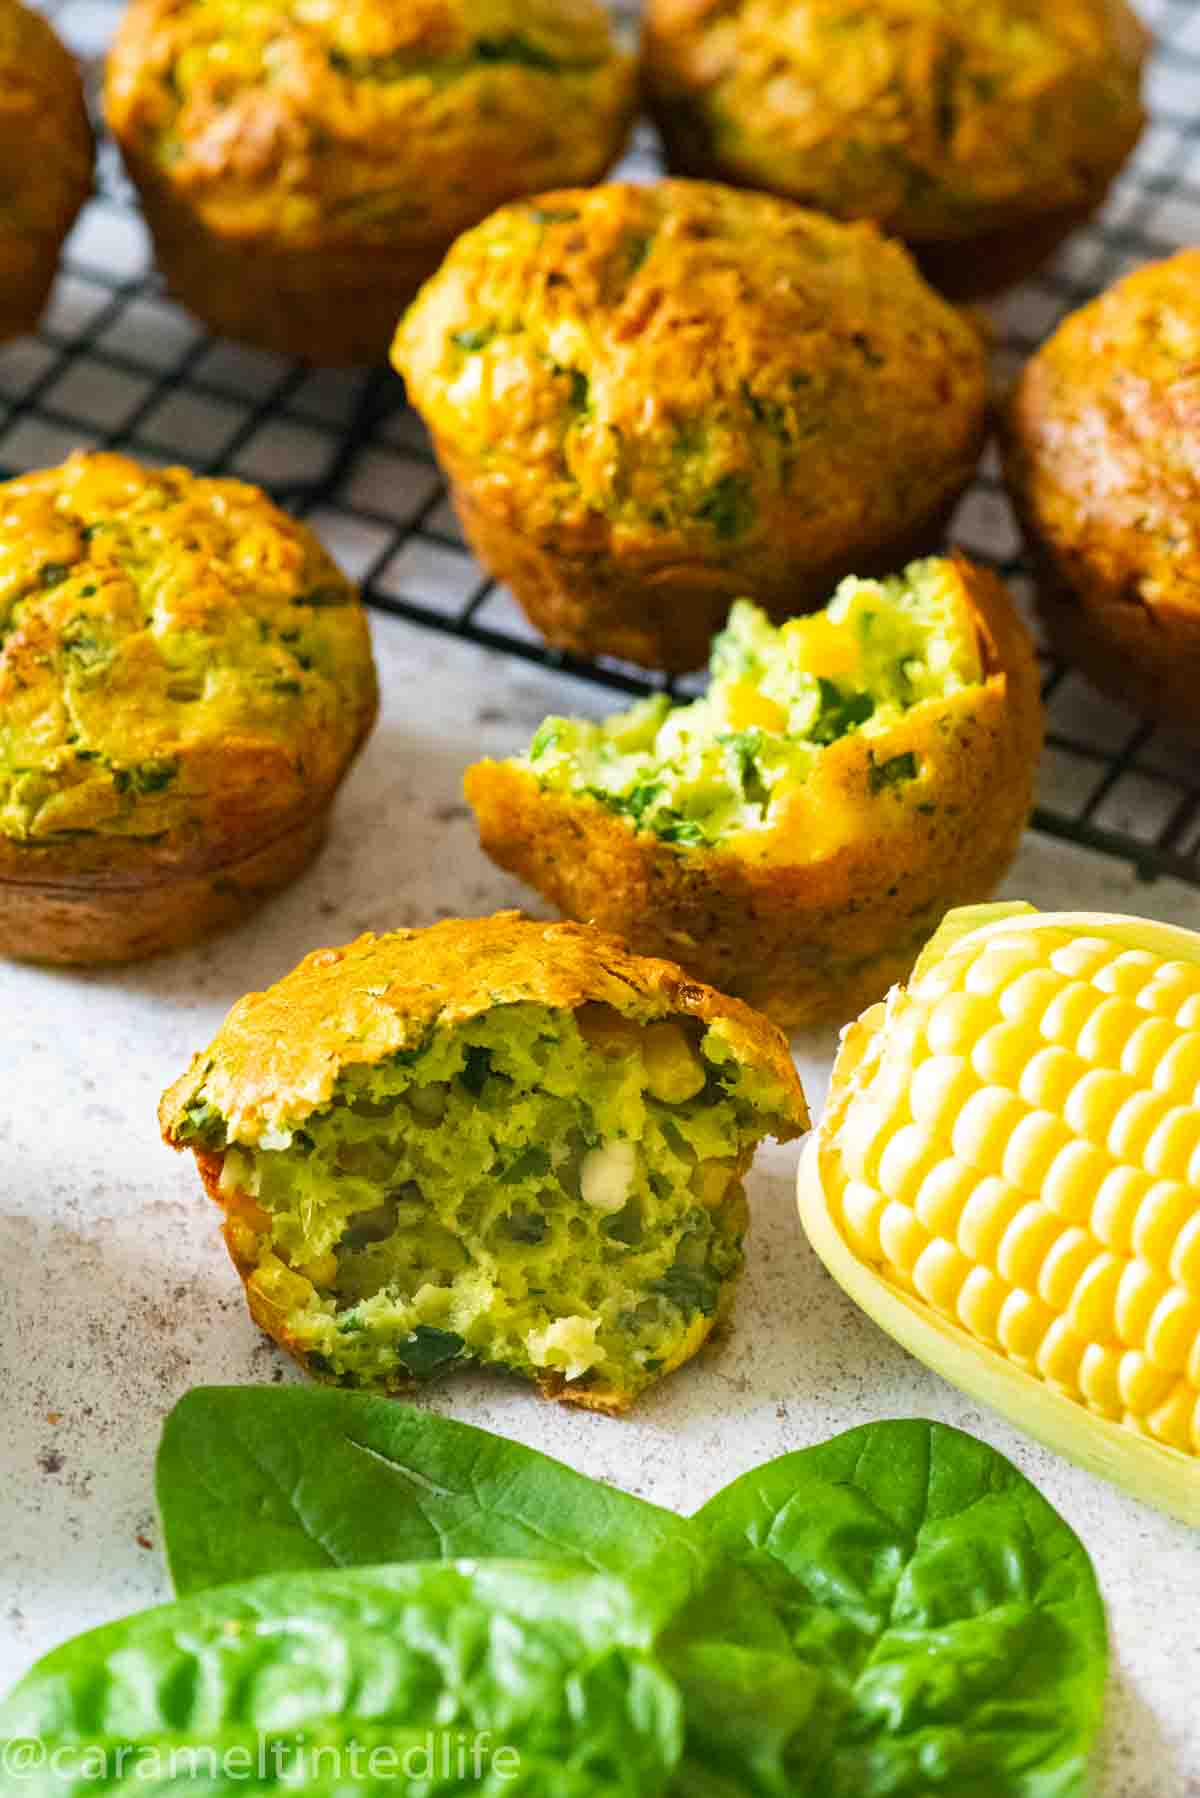 a broken spinach muffin with a corn cob and spinach leaves